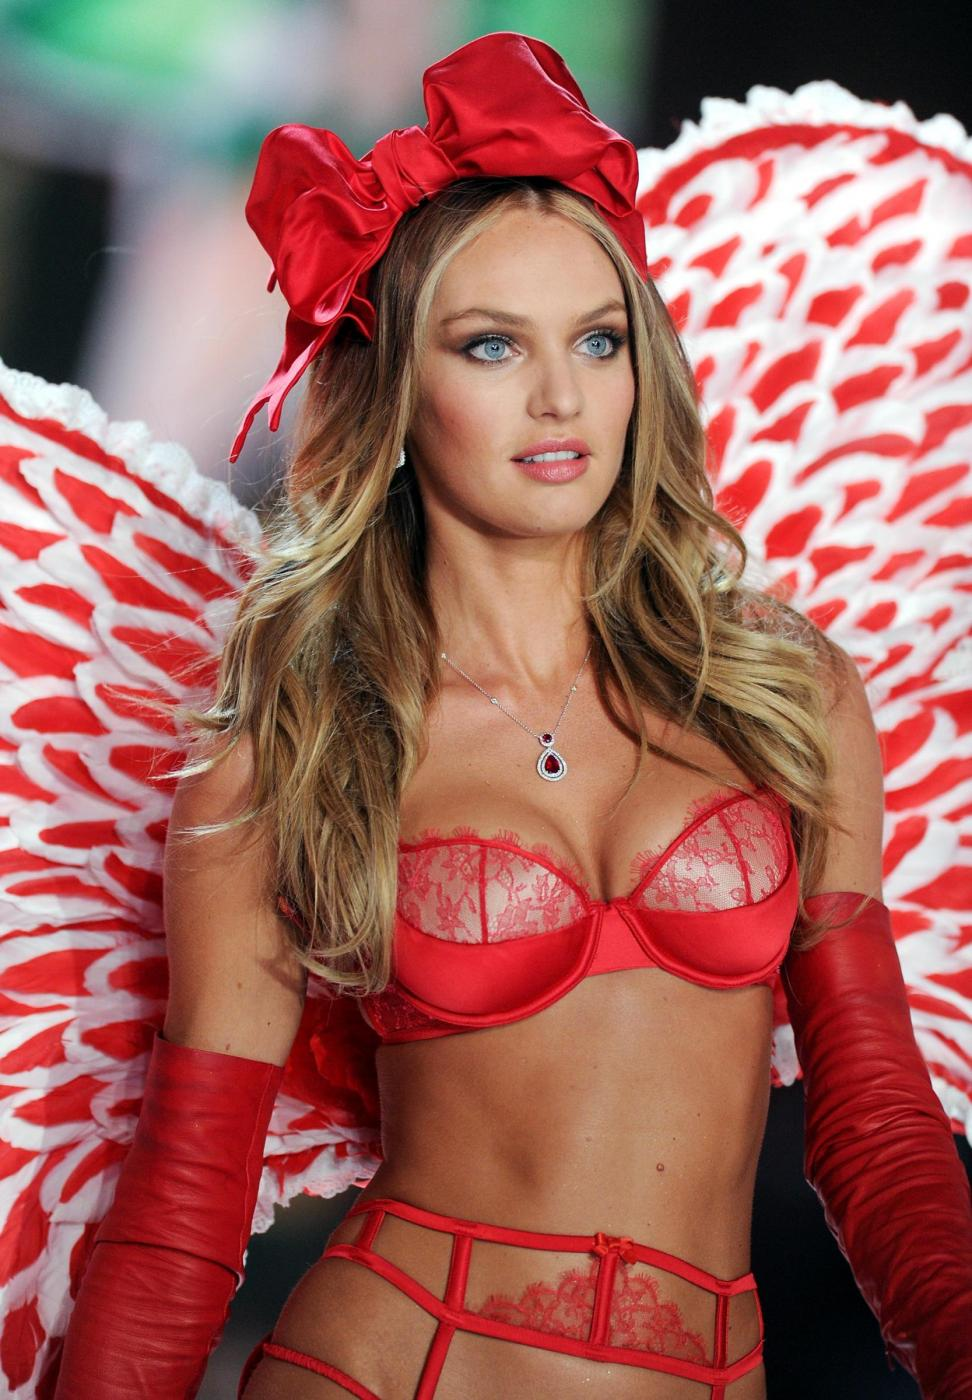 Candice Swanepoel, l'angelo affamato di Victoria's Secret